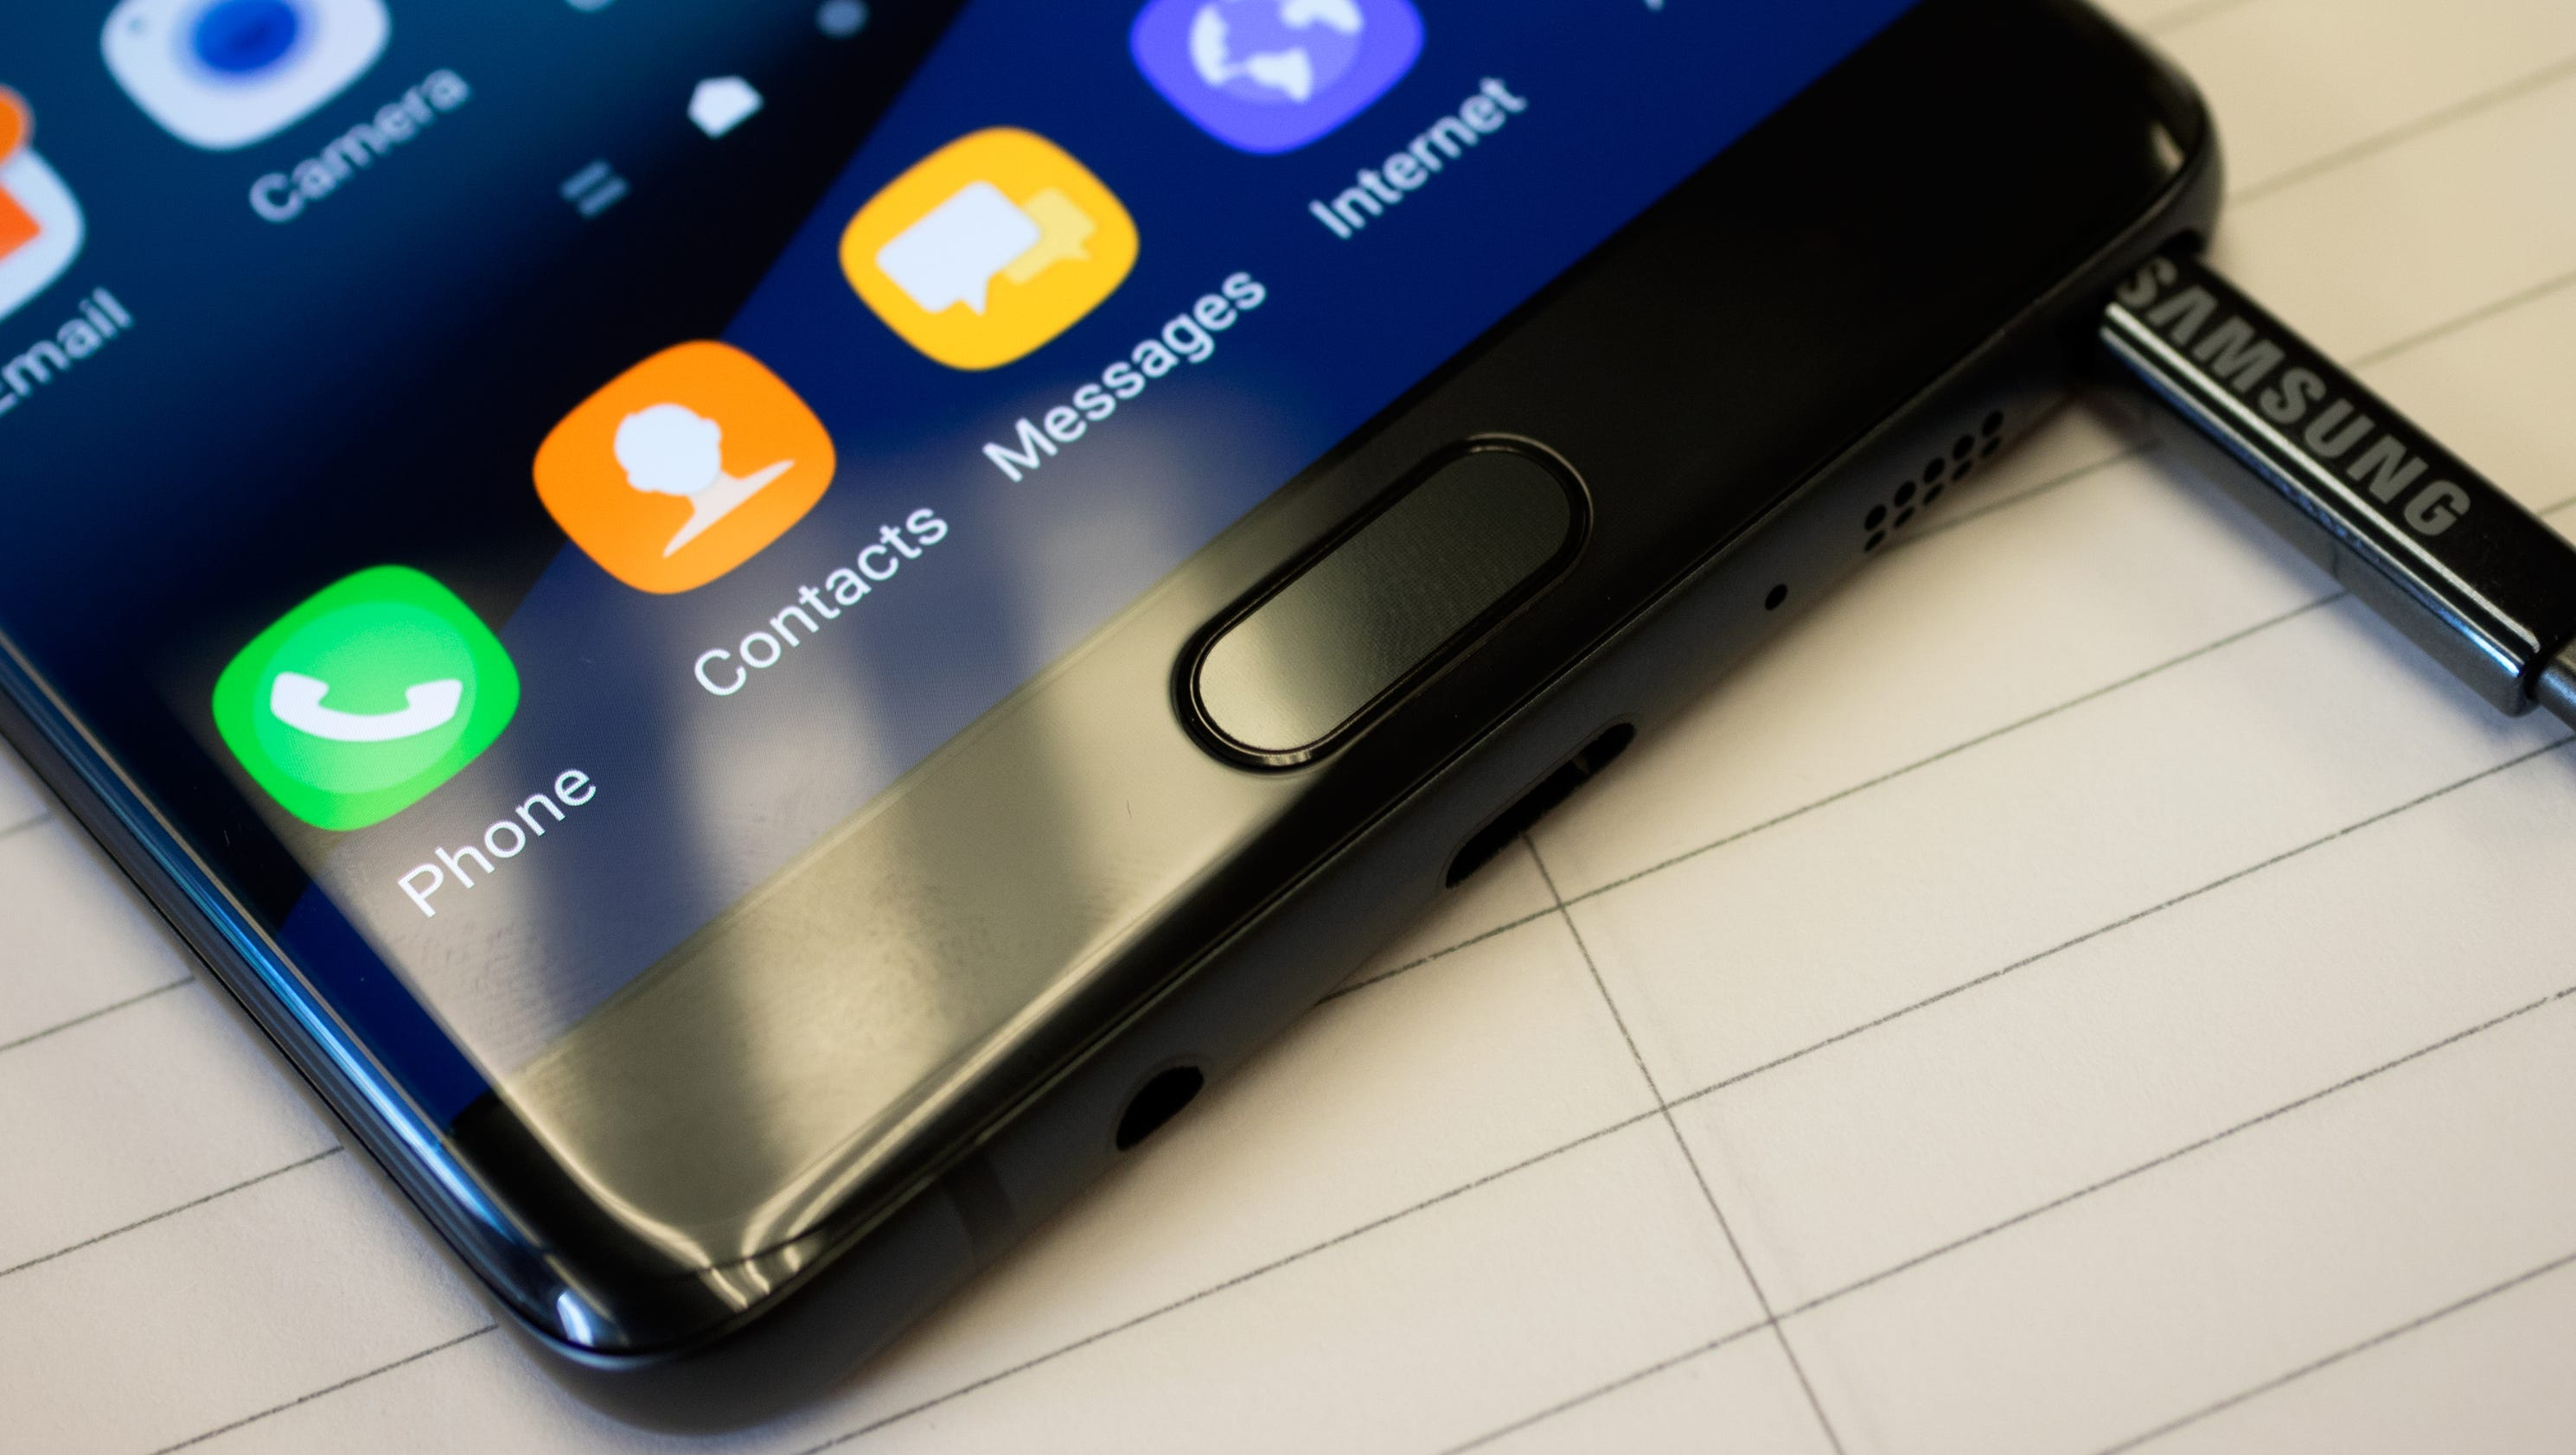 What To Do If You Own A Samsung Galaxy Note 7